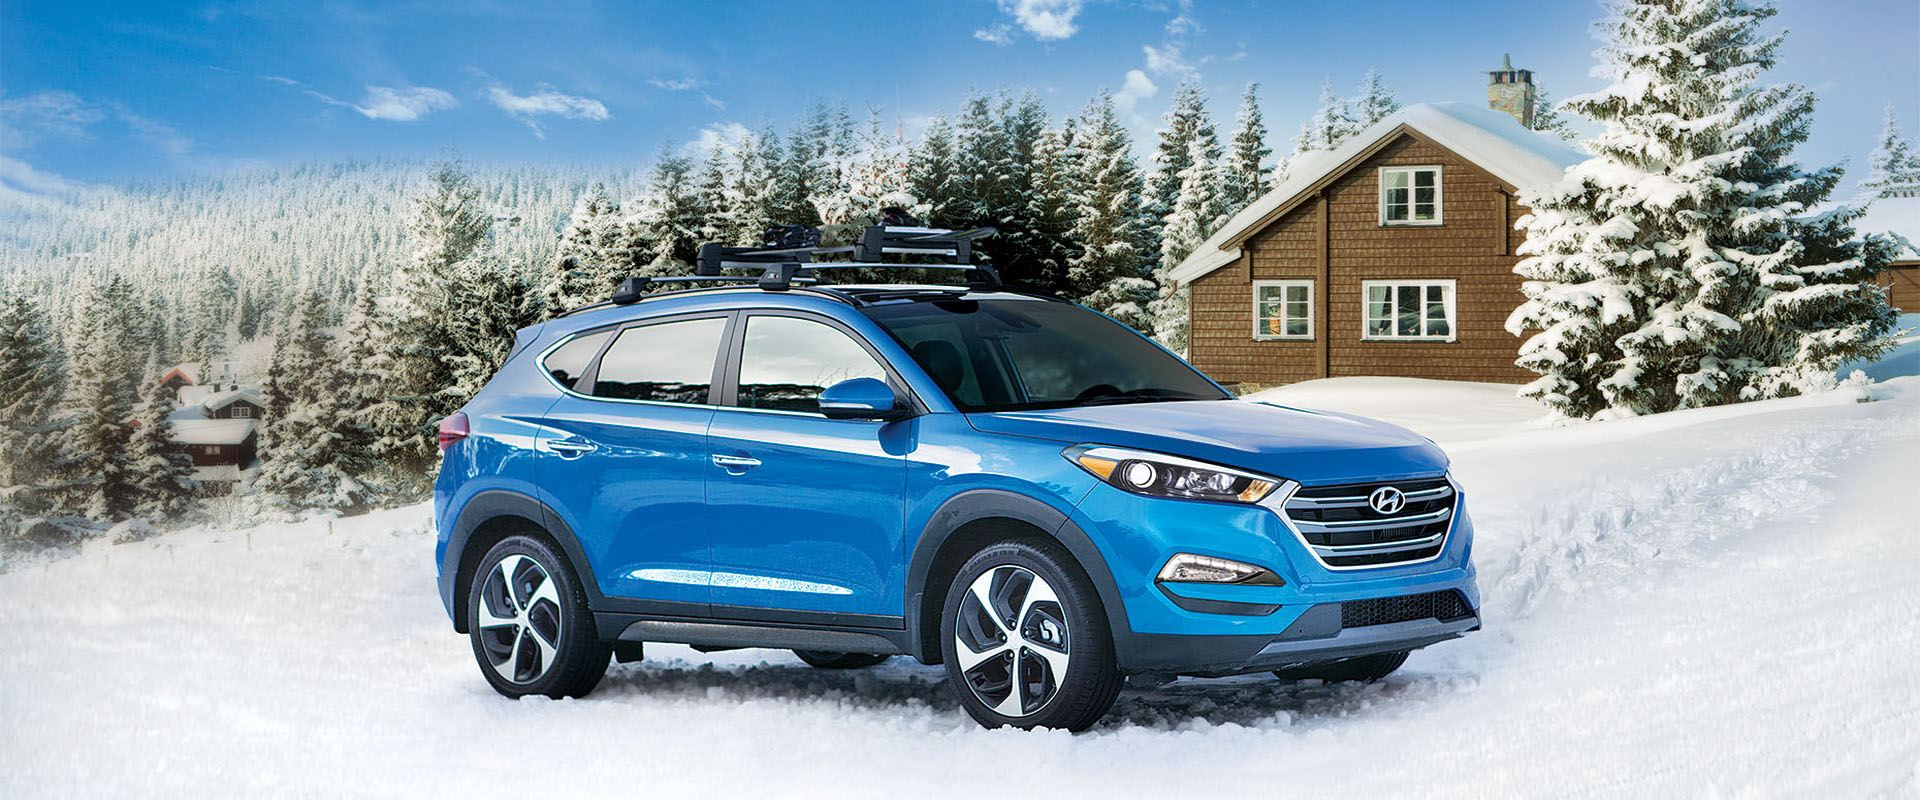 Discover the 2020 Hyundai Tucson at Pathway Hyundai in Ottawa ON